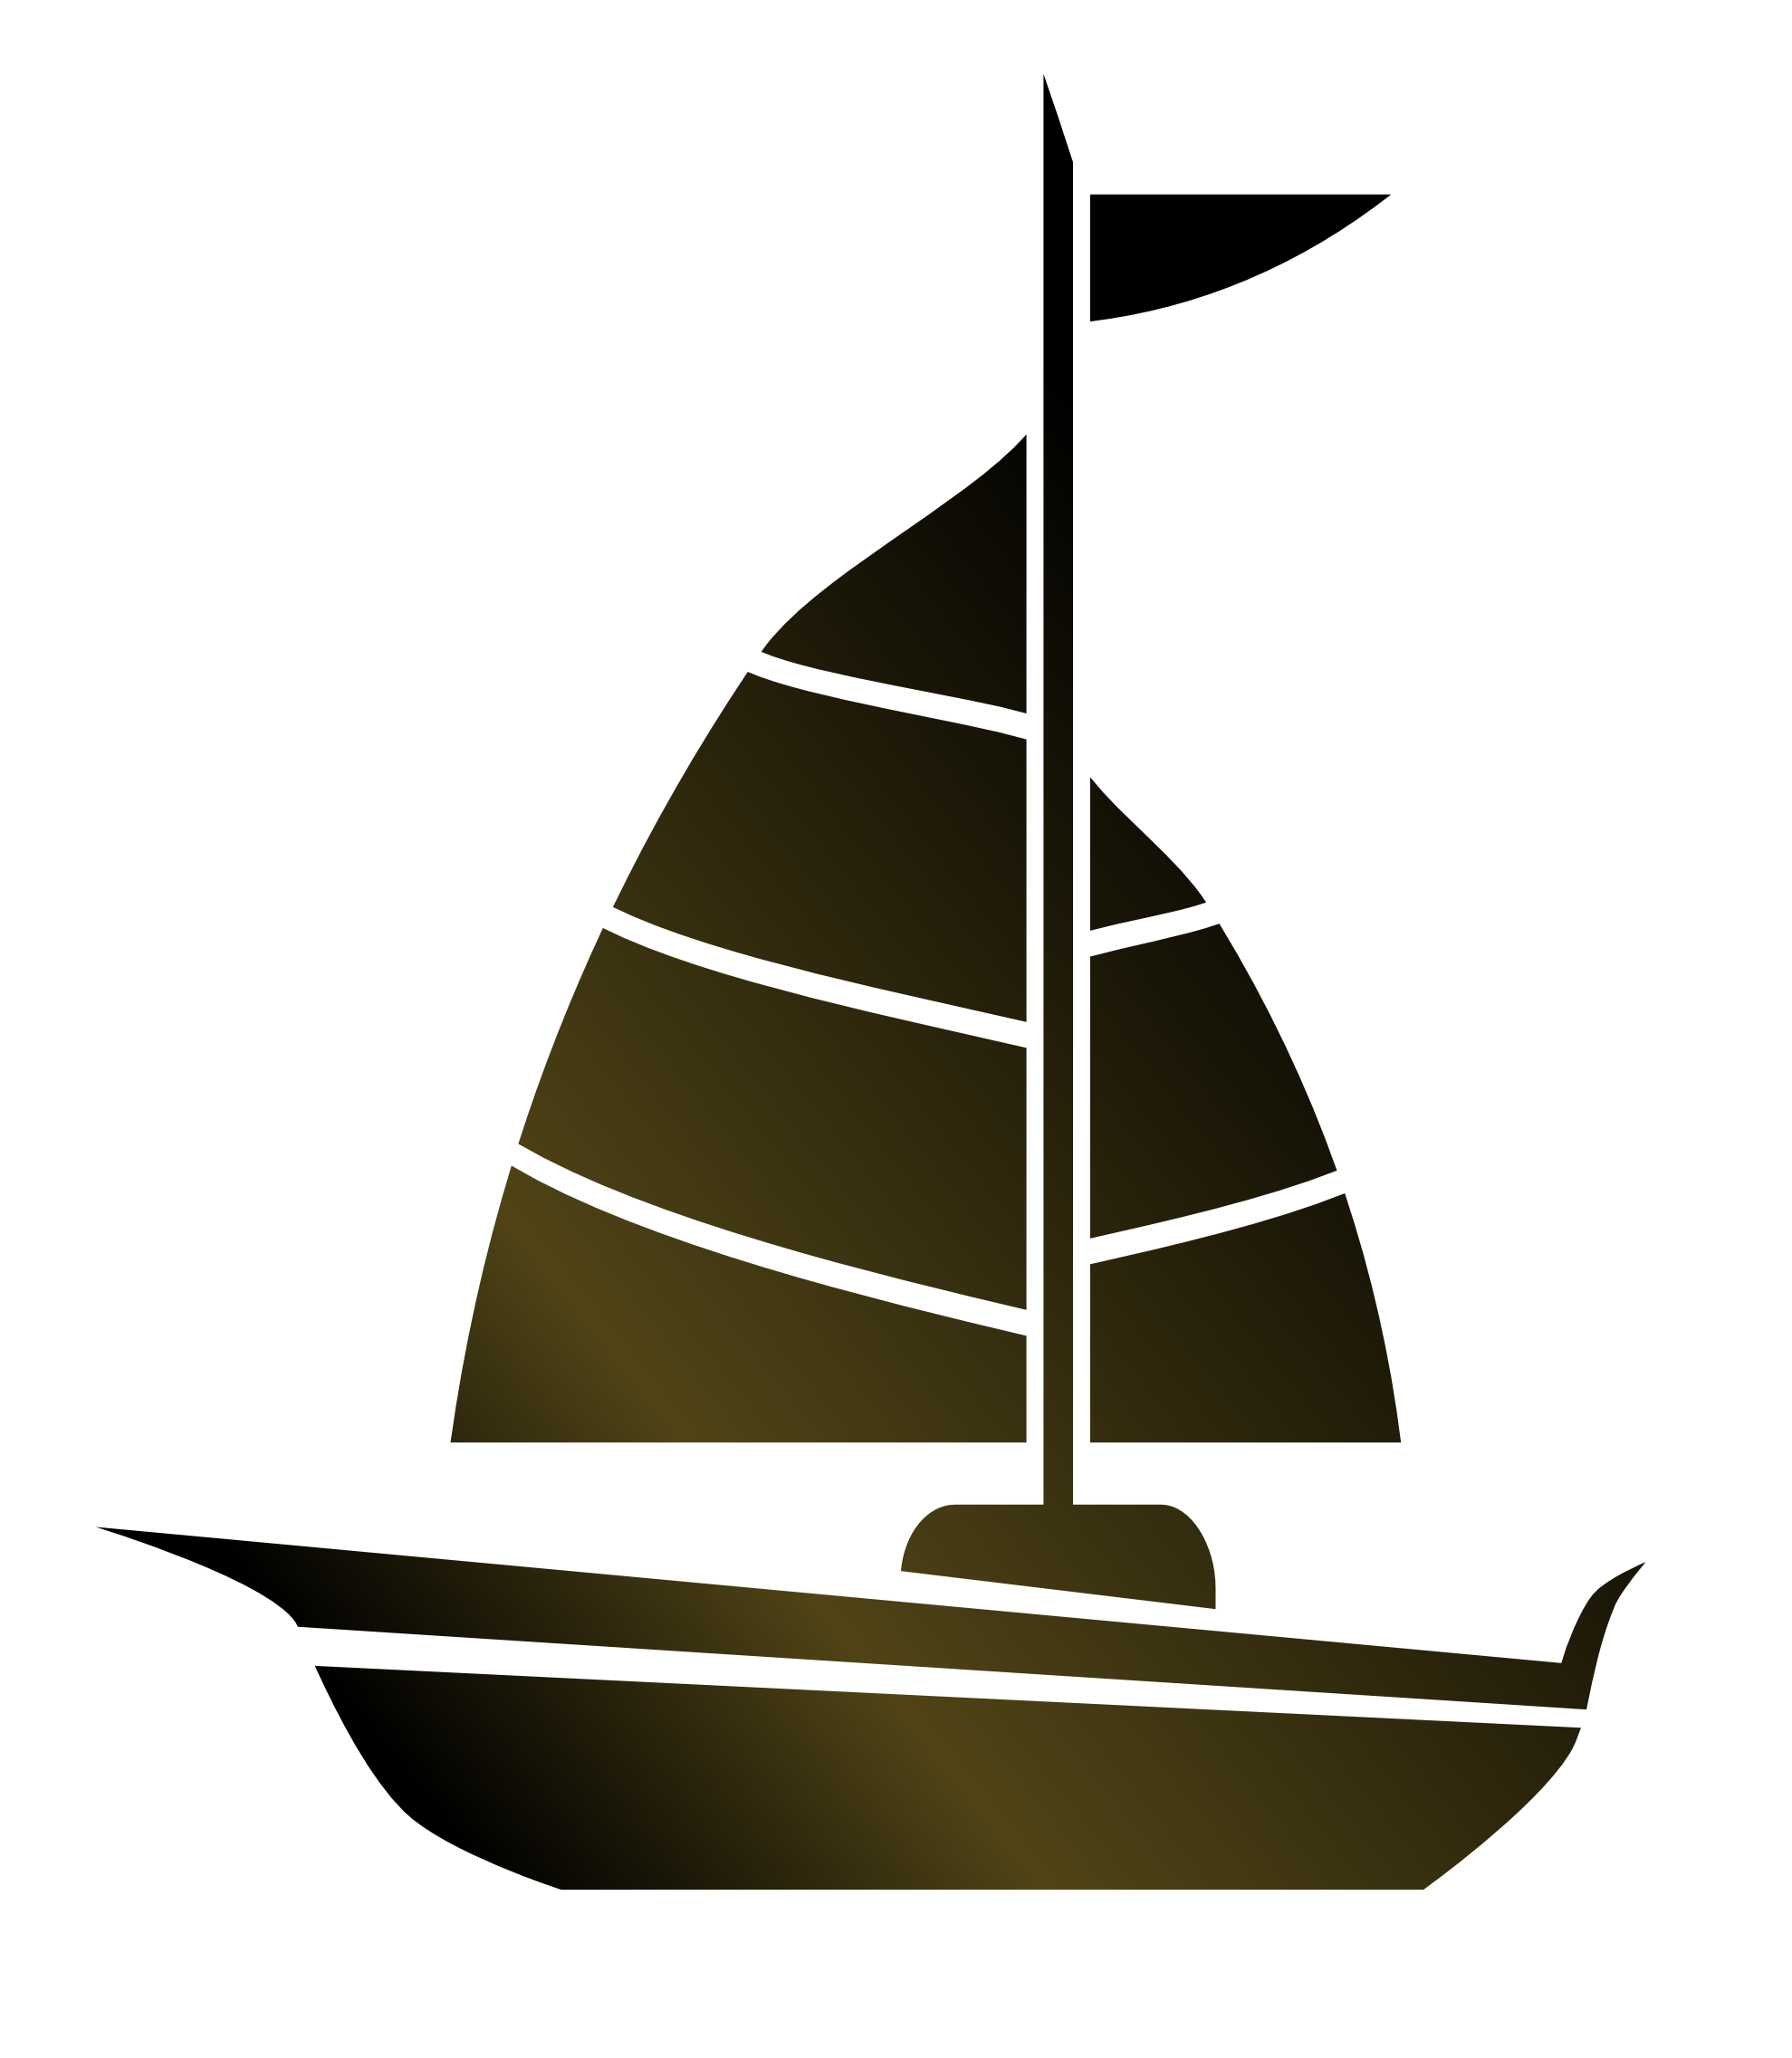 Sailboat clipart animated. Mayflower color transparent free